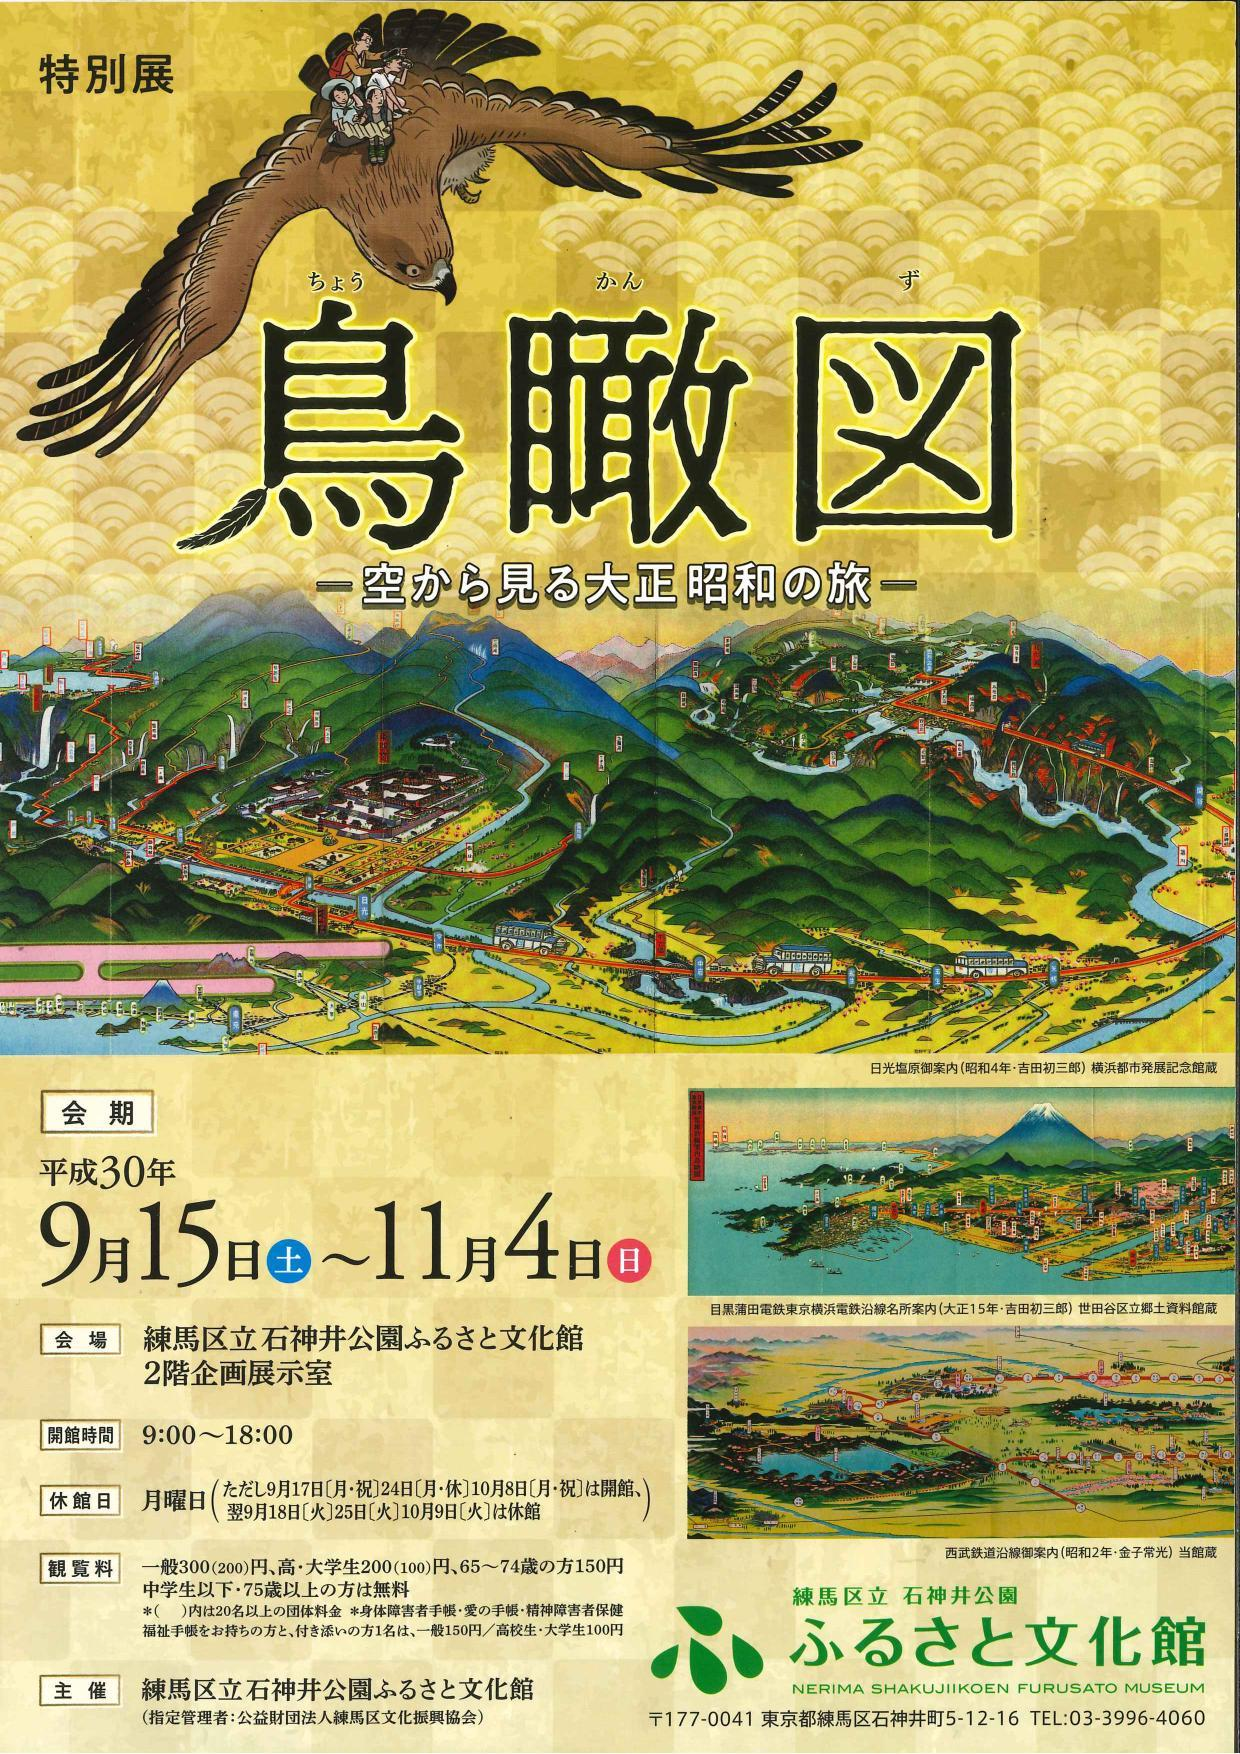 Trip to Showa, Taisho ... to look at from bird's-eye view - sky